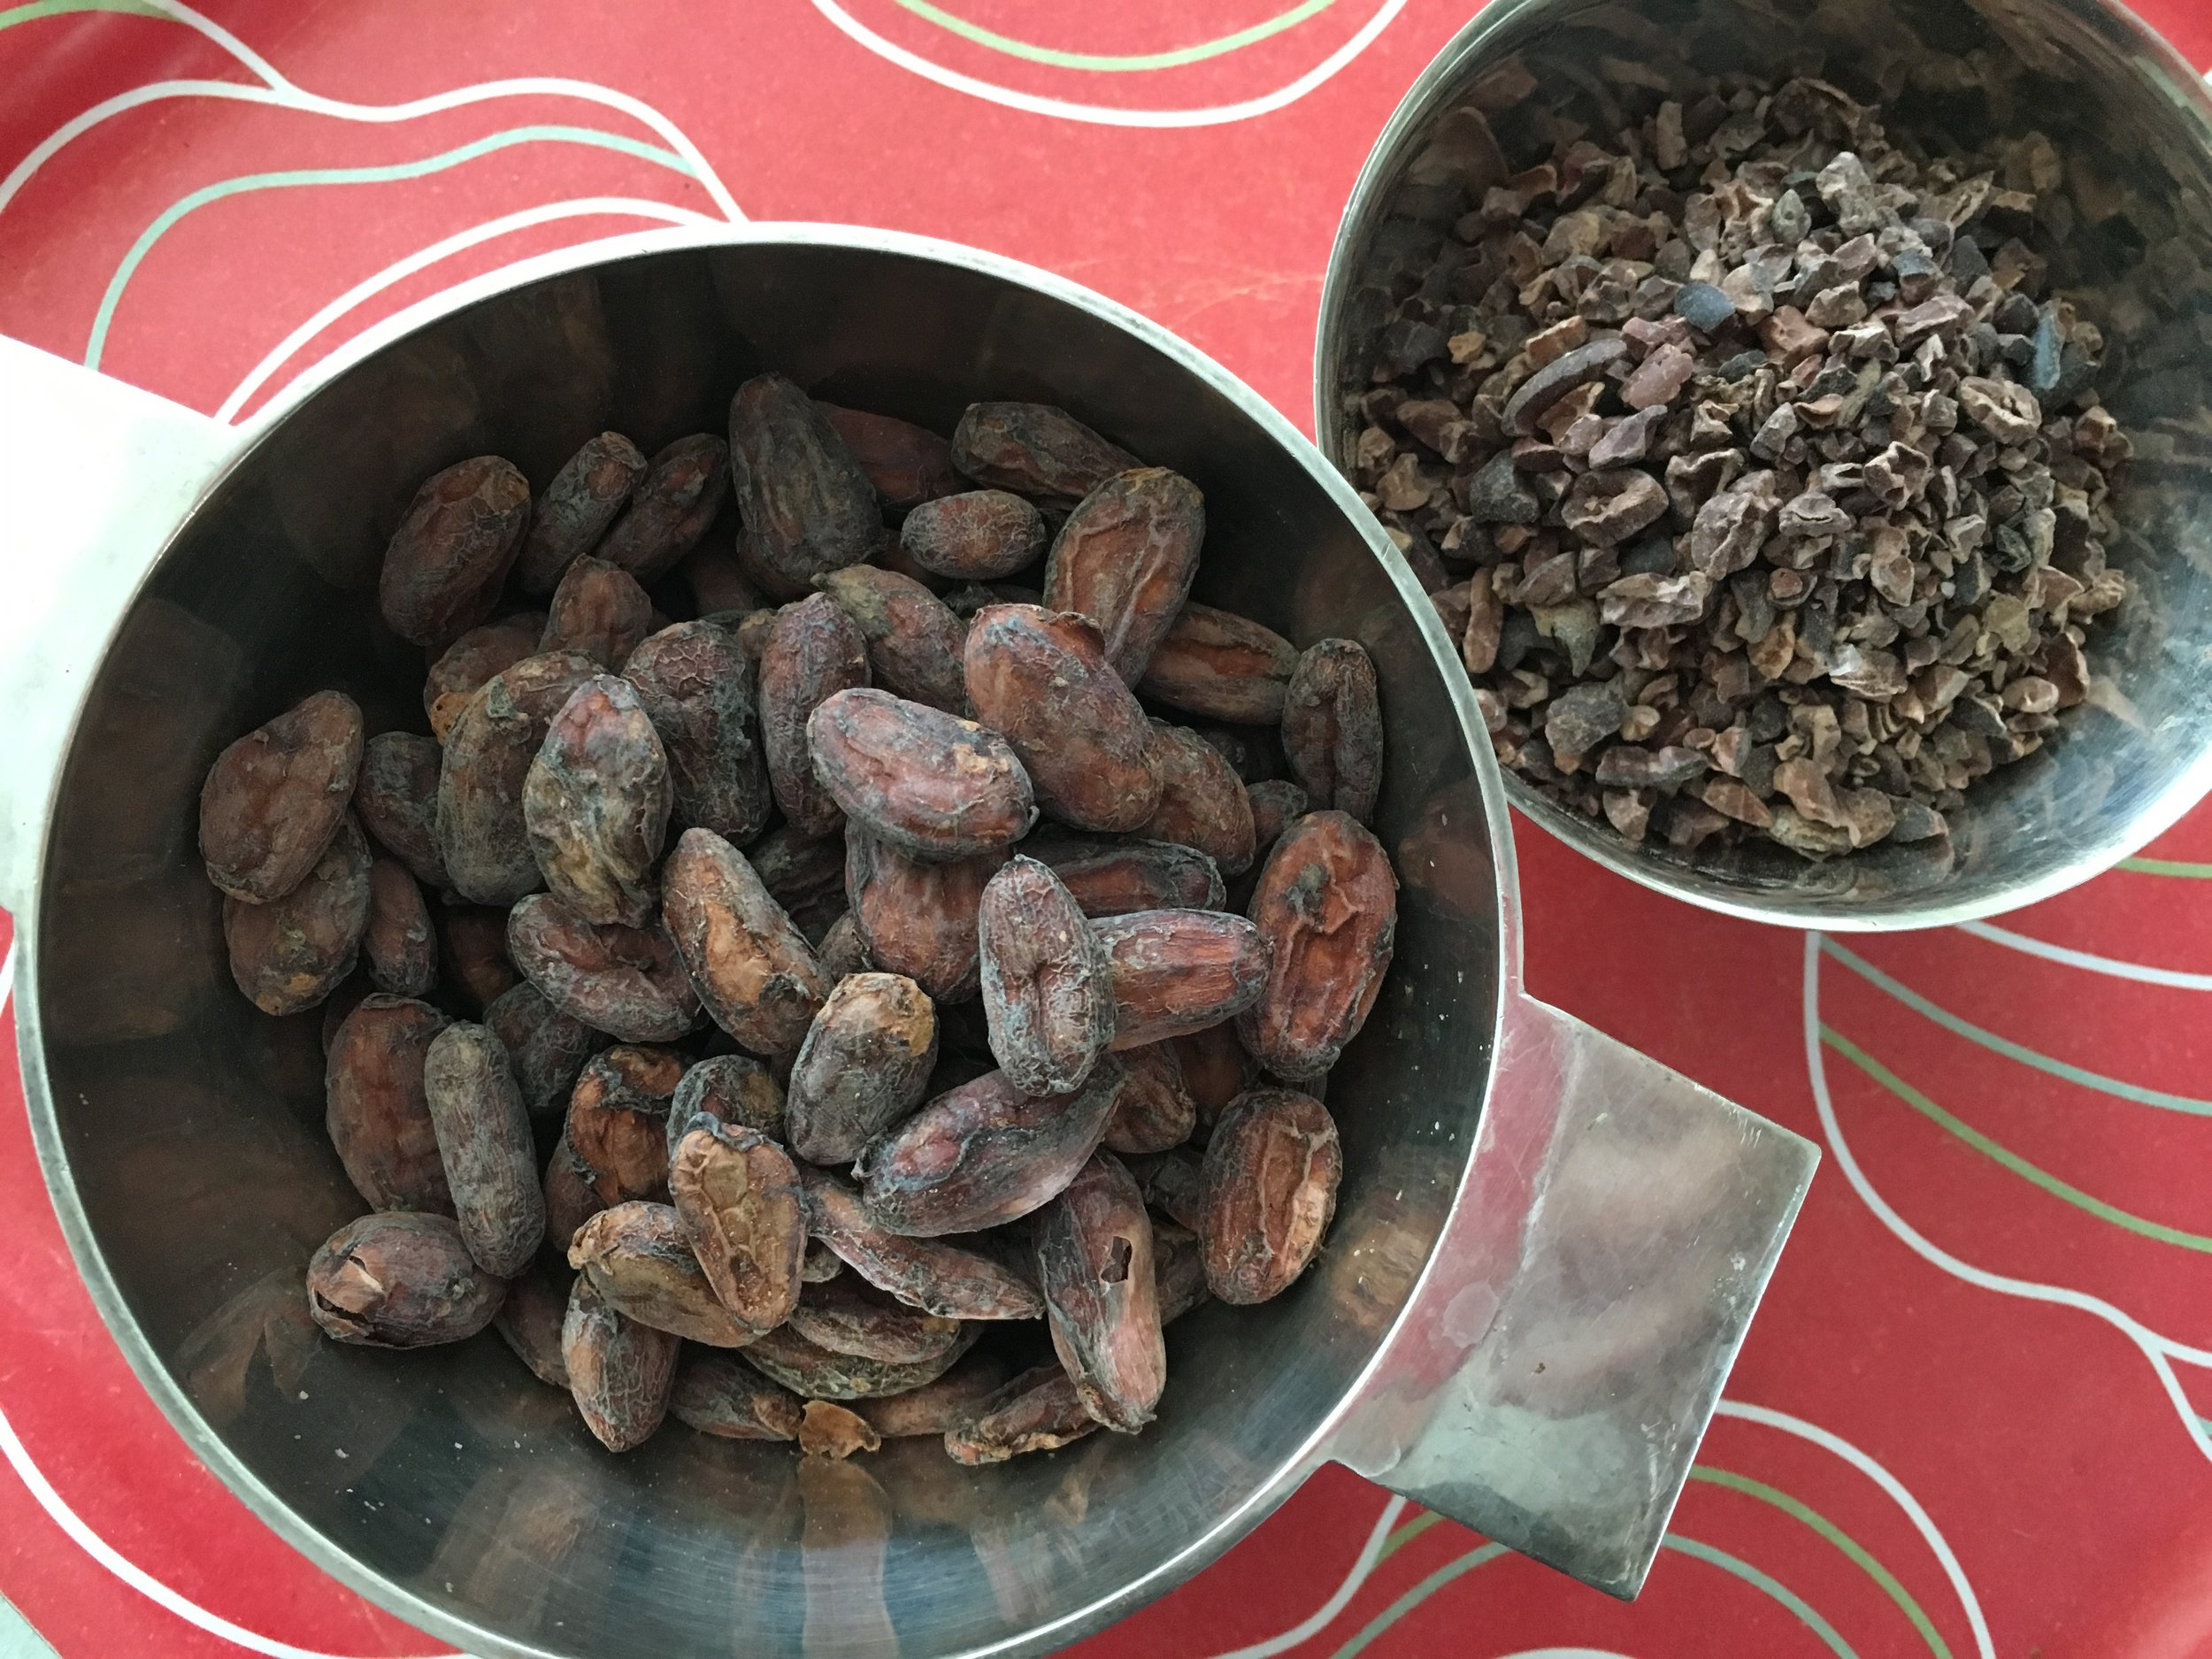 raw cacao beans and nibs